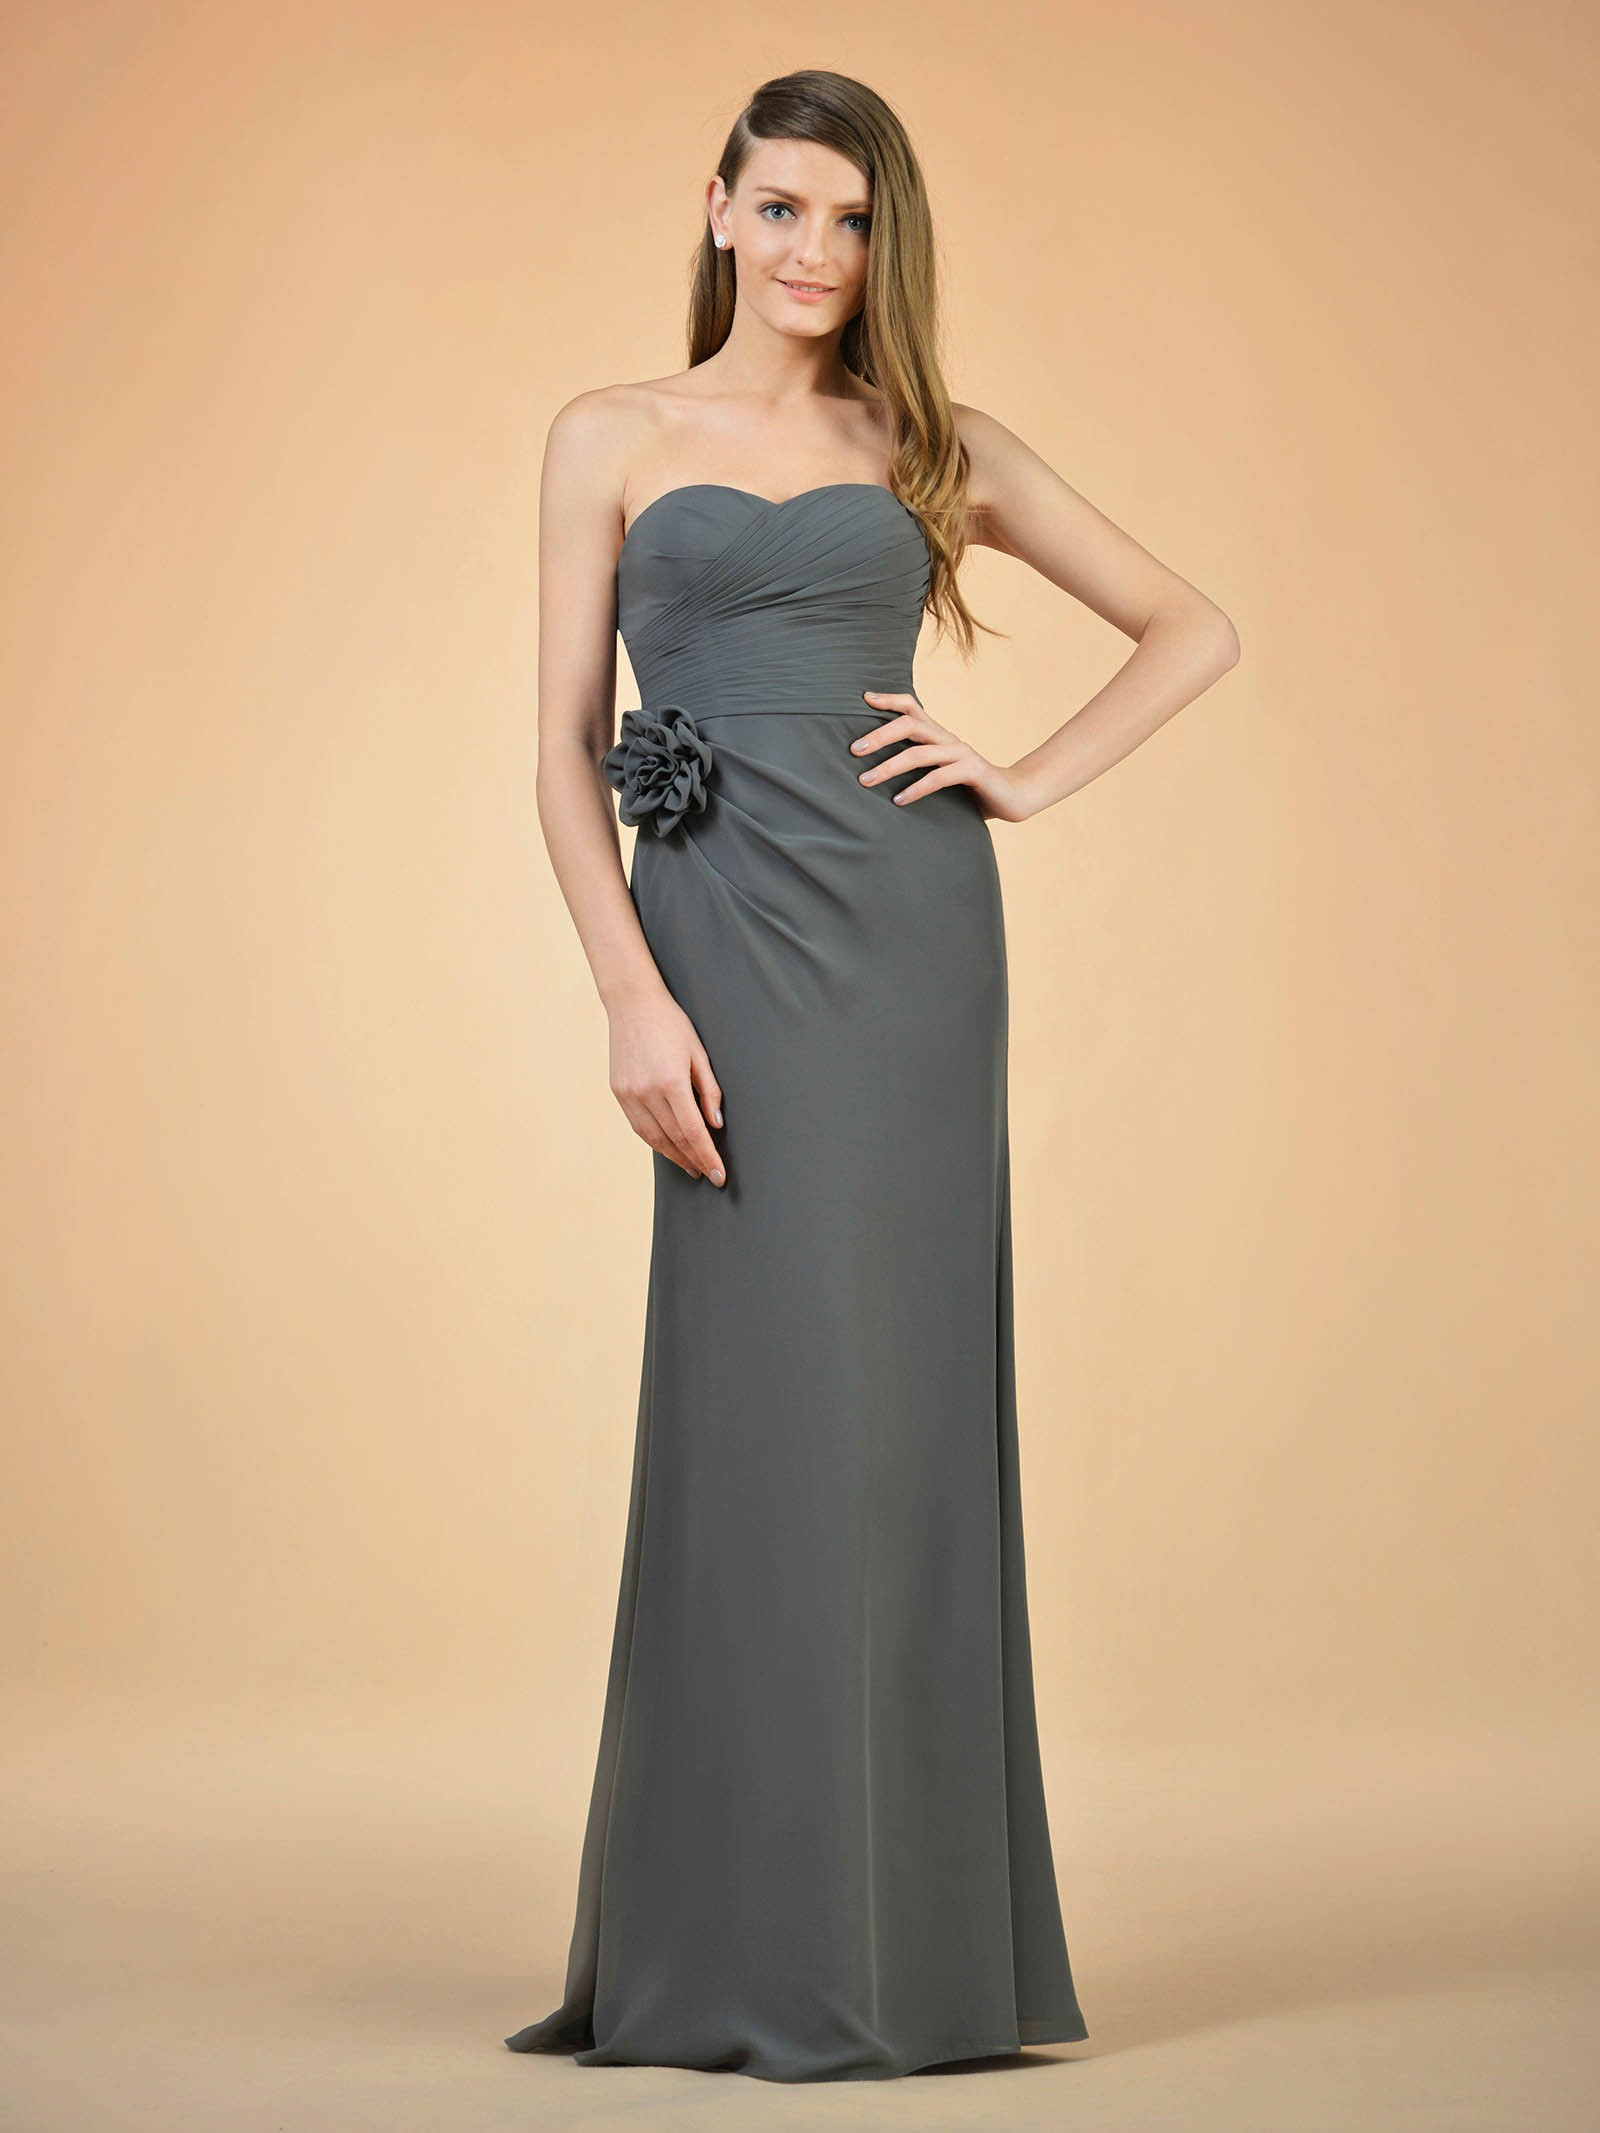 Cheney Floral Bridesmaid Dress